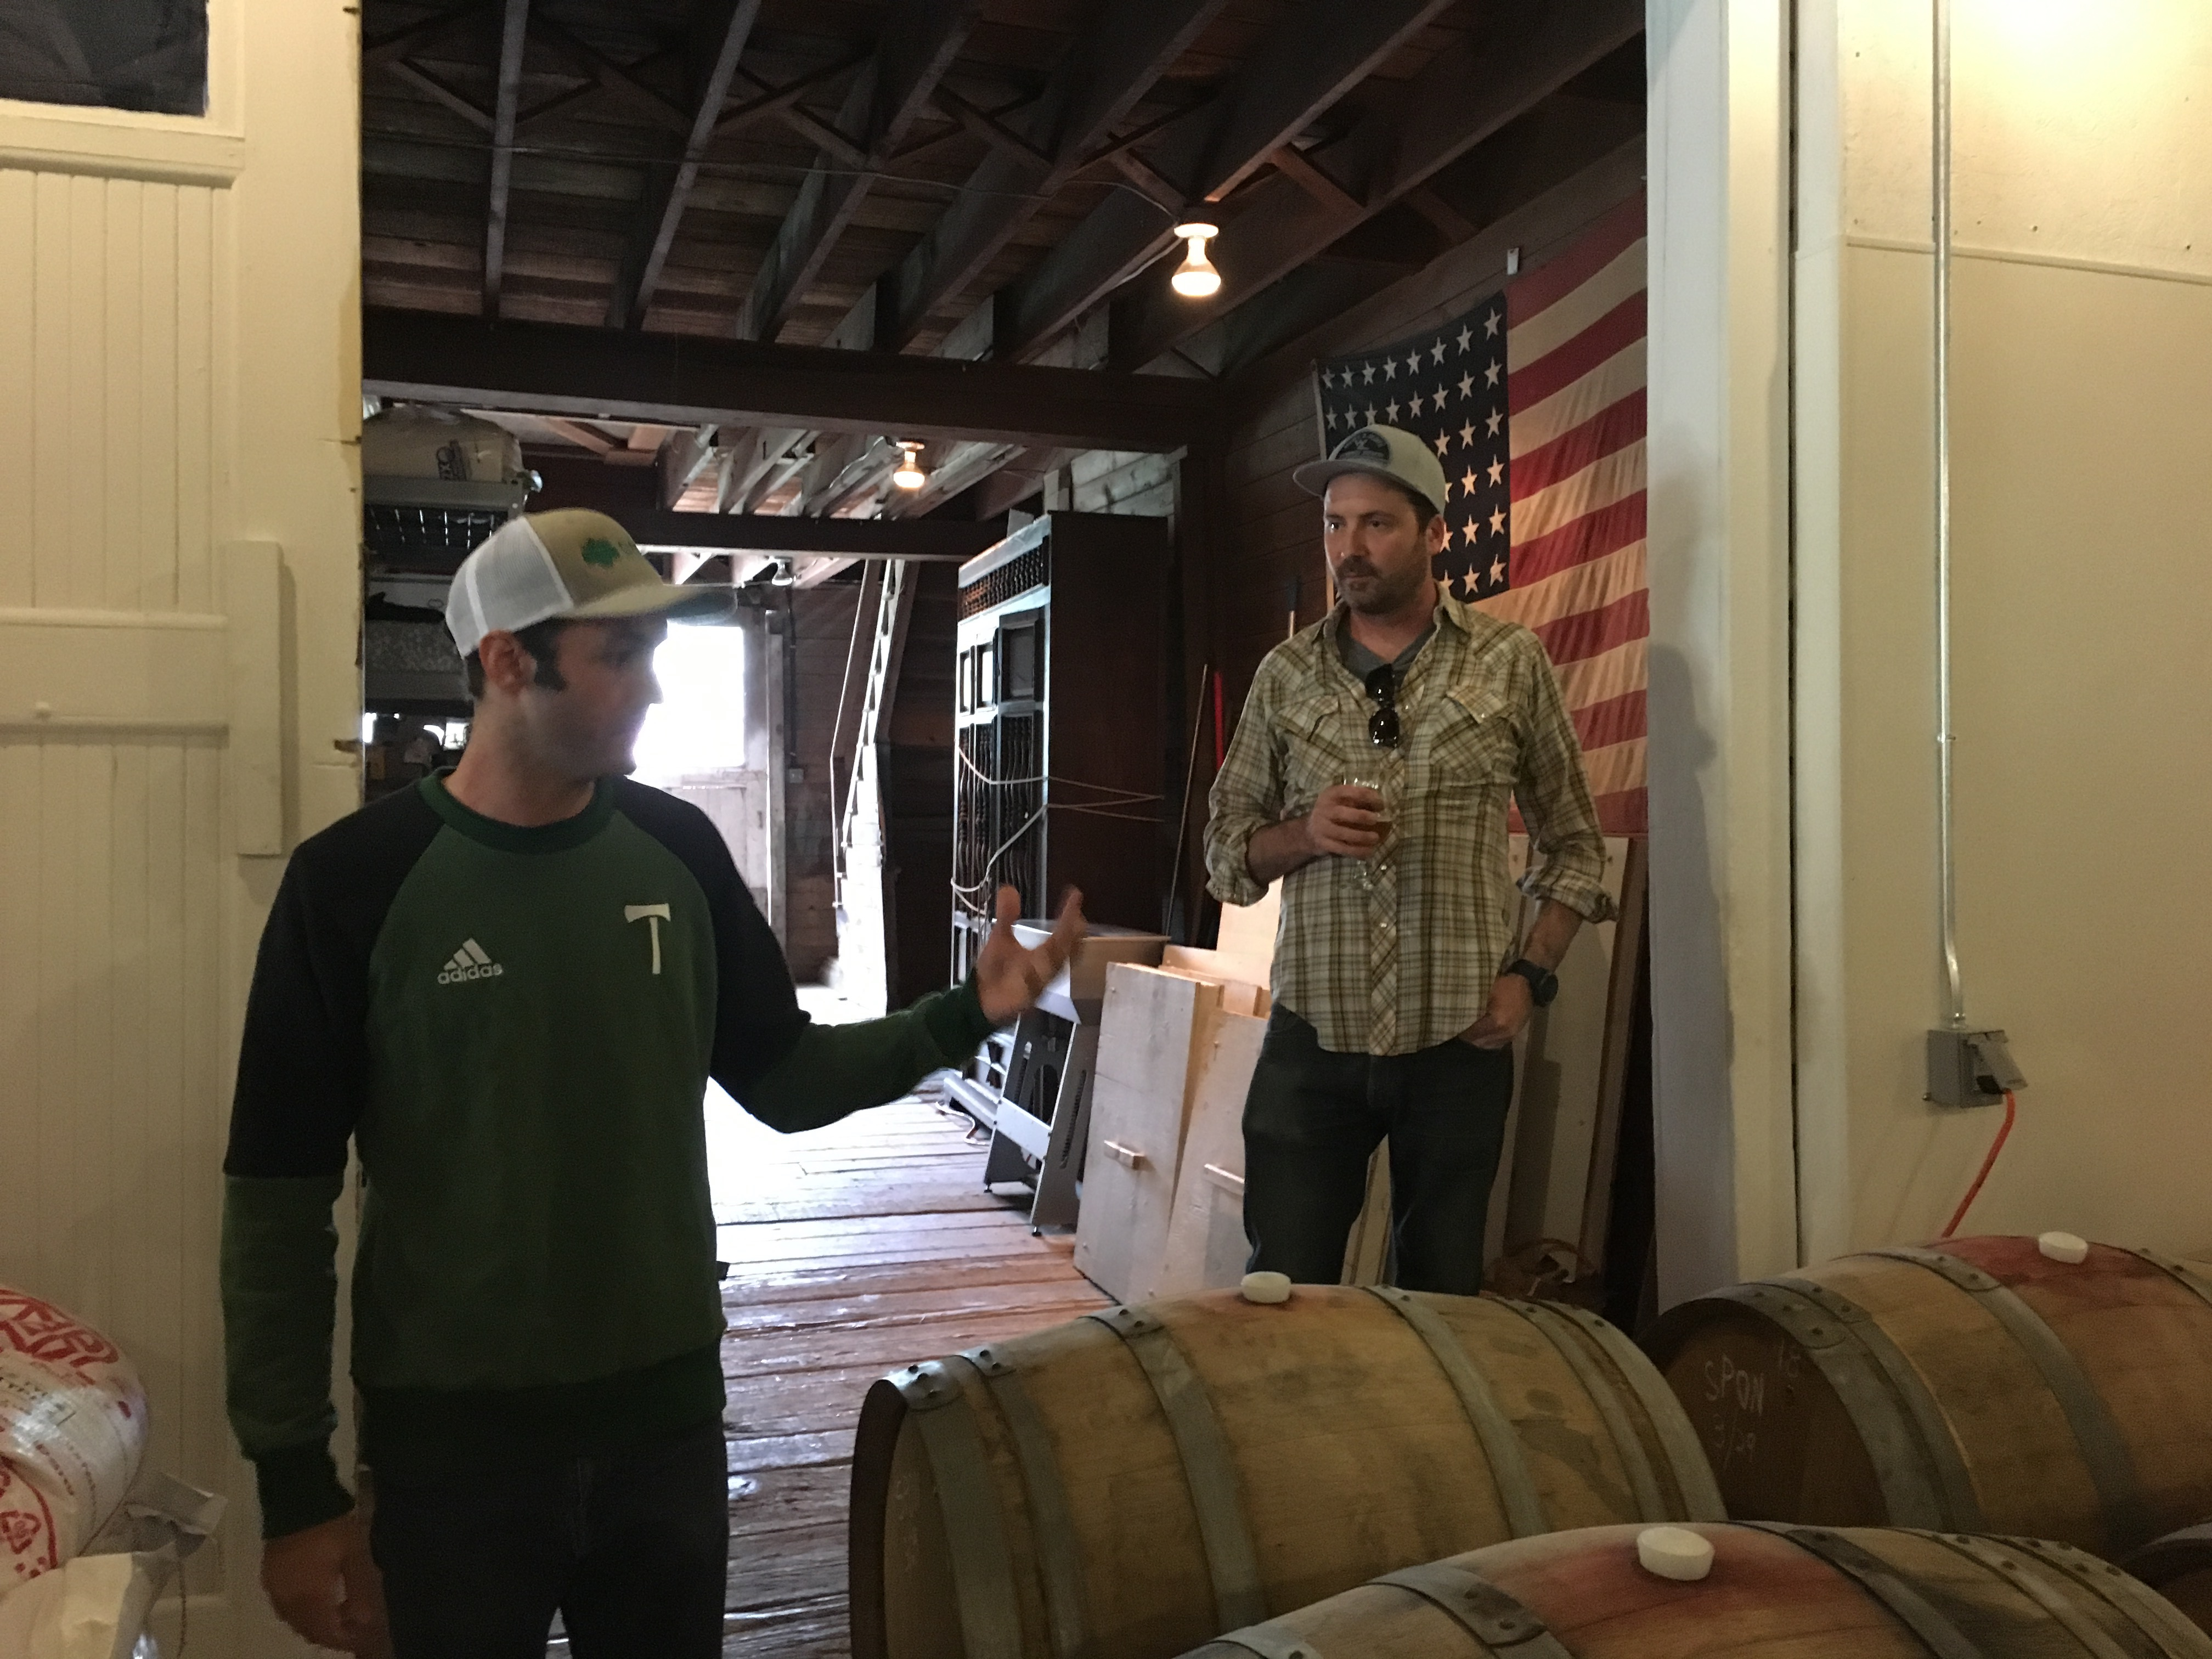 Jake Miller and Christian DeBenedetti discussing some beers aging in barrels with a 48 Star US Flag behind them.